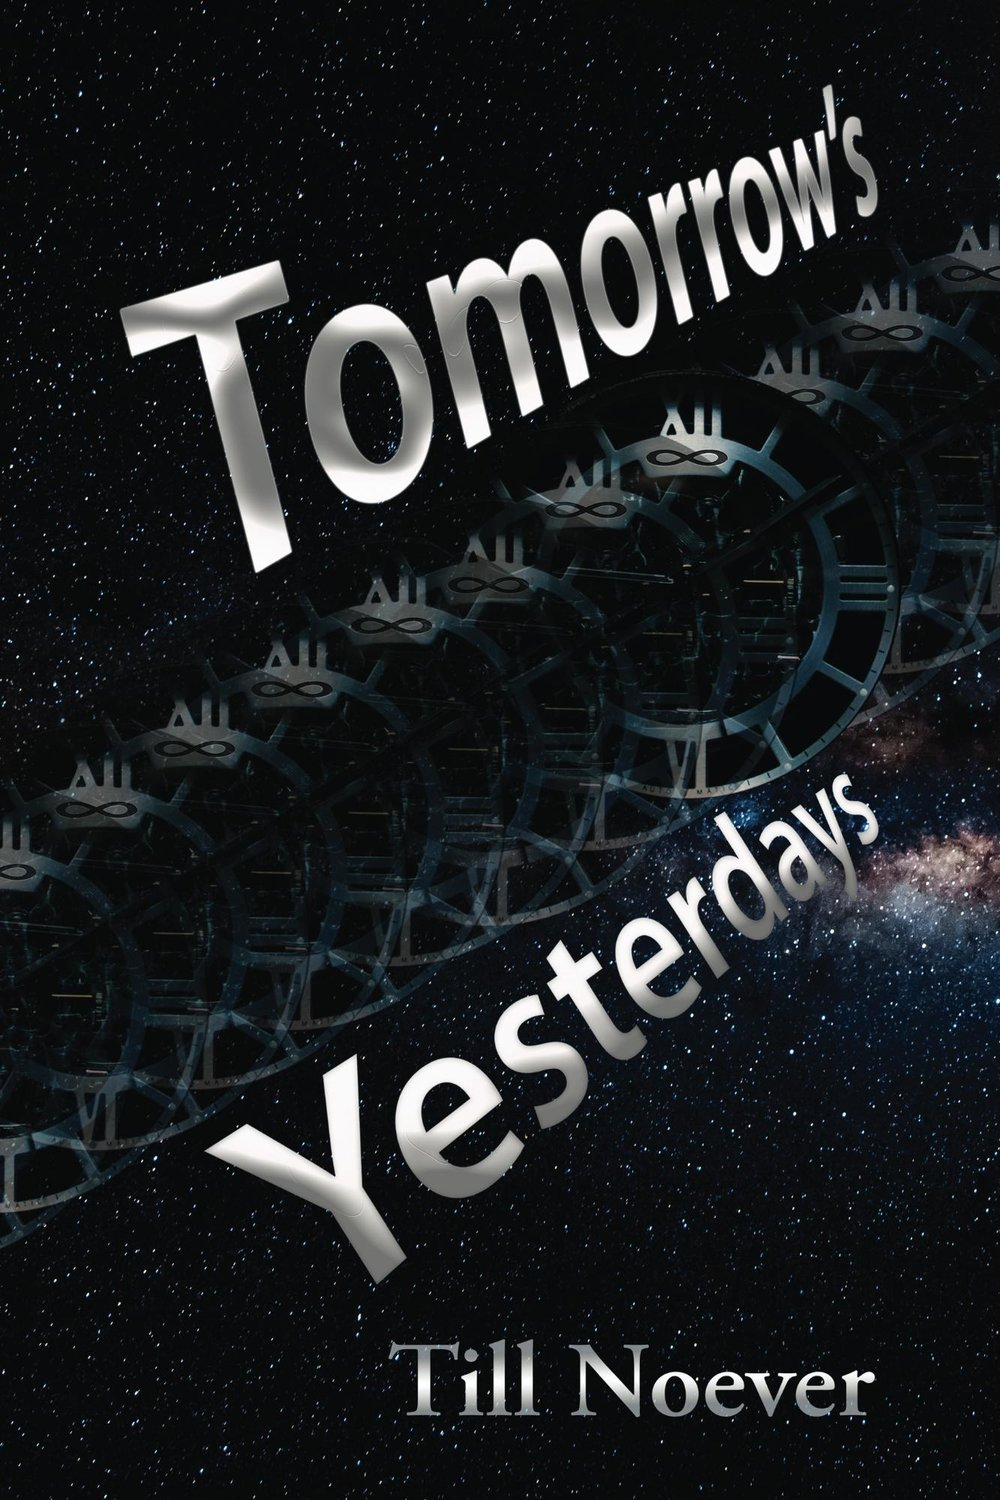 Tomorrows_Yesterday_Cover_for_Kindle.jpg